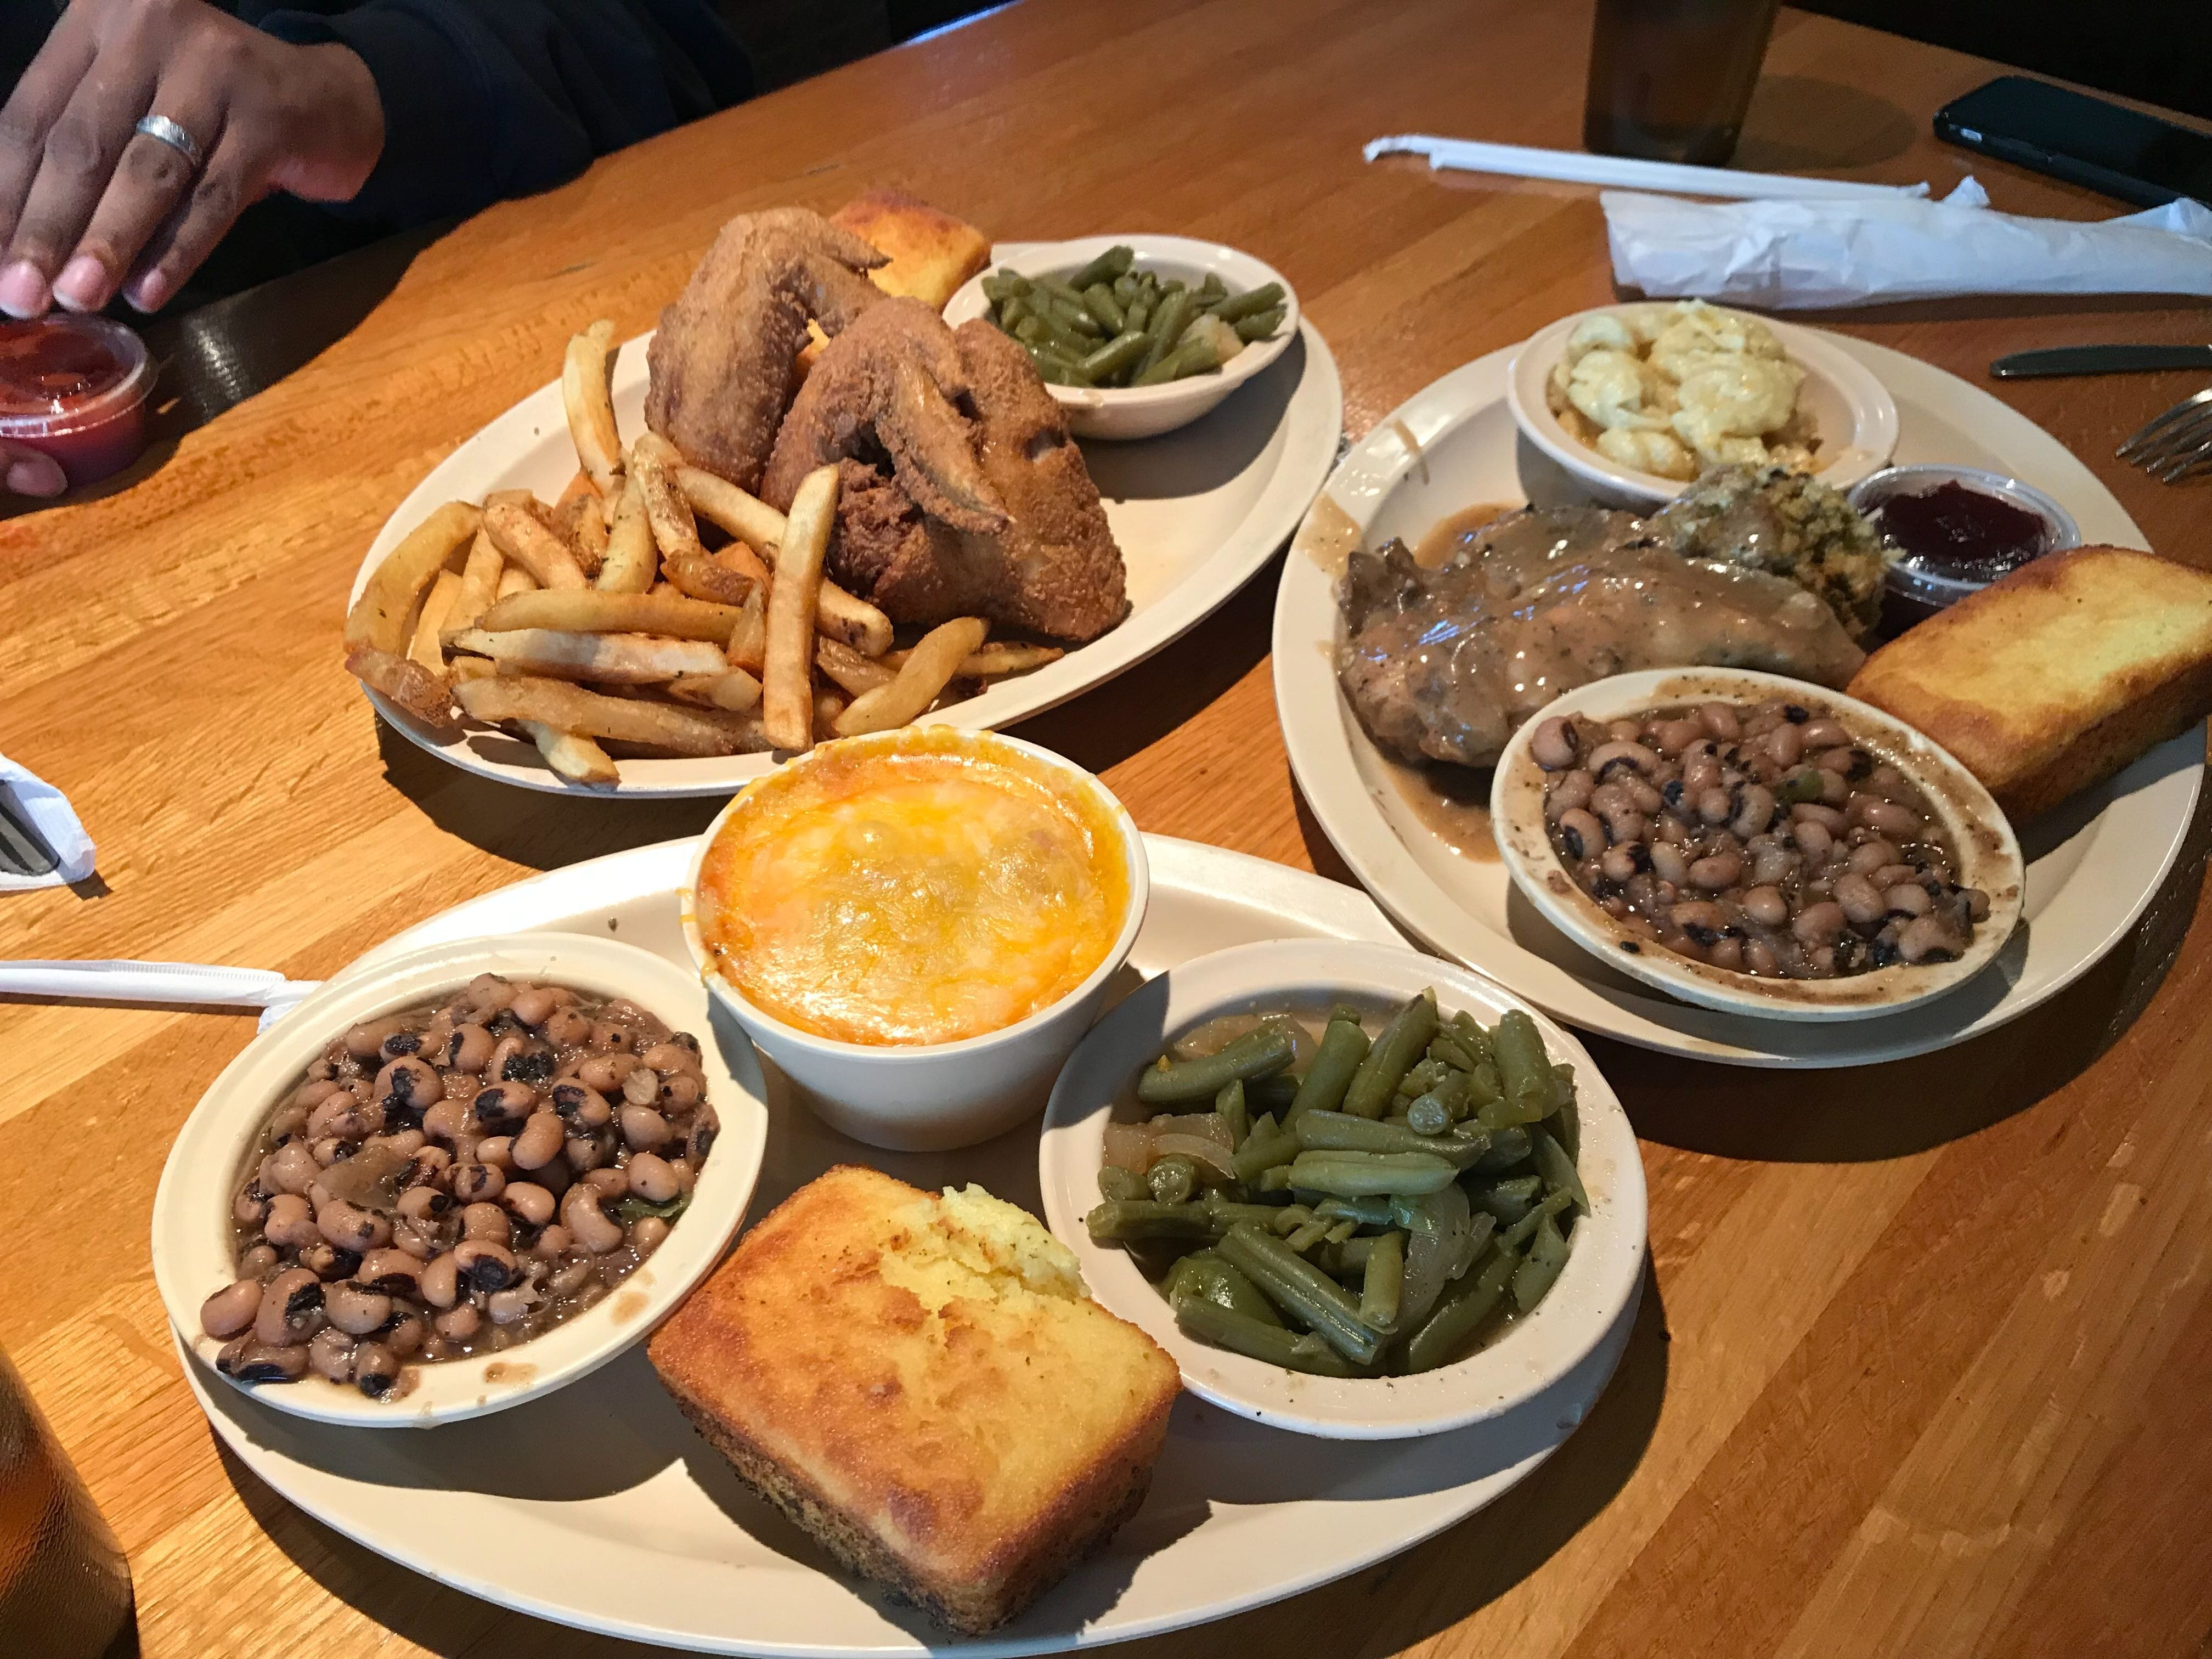 Southern Hands Home Style Cooking offers classic soul food entrees and sides, including smothered pork chops, fried chicken, meat loaf, baked spaghetti, black-eyed peas, and cornbread. (Cole Bradley)